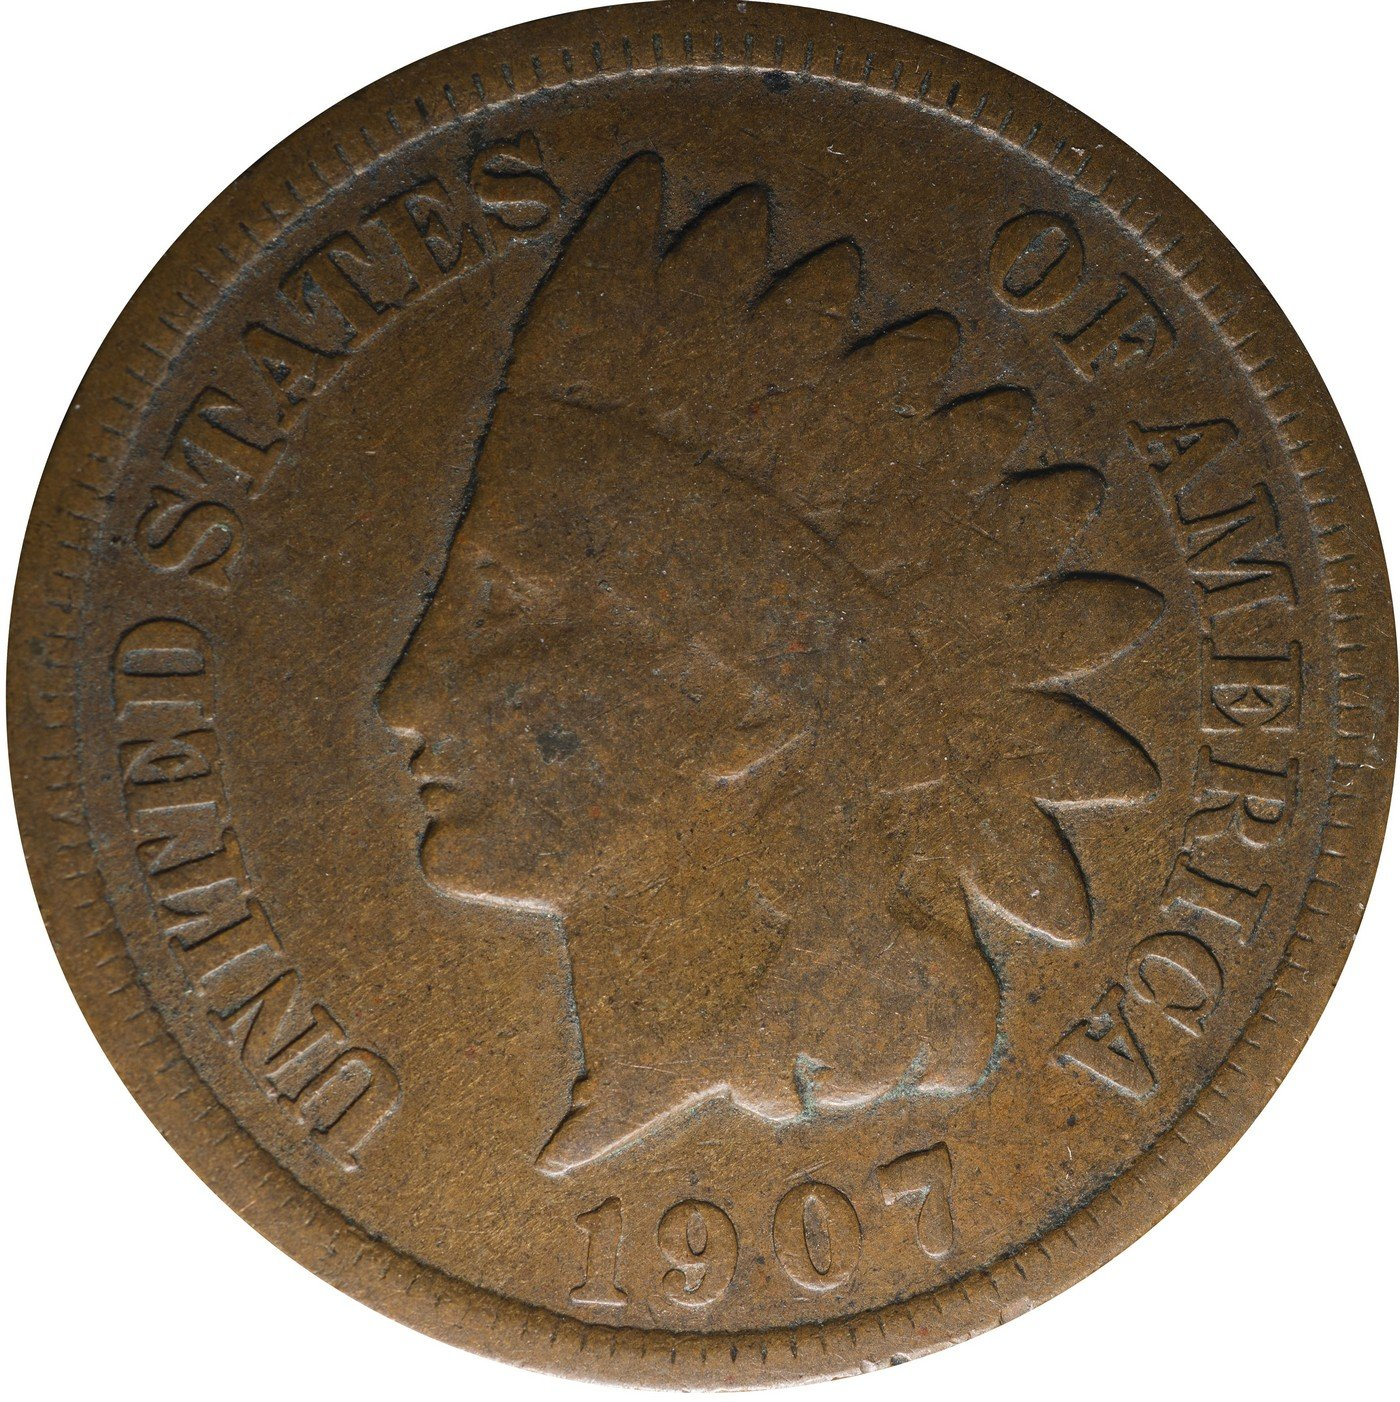 1907 RPD-036 Indian Head Penny - Photo by Kurt Story